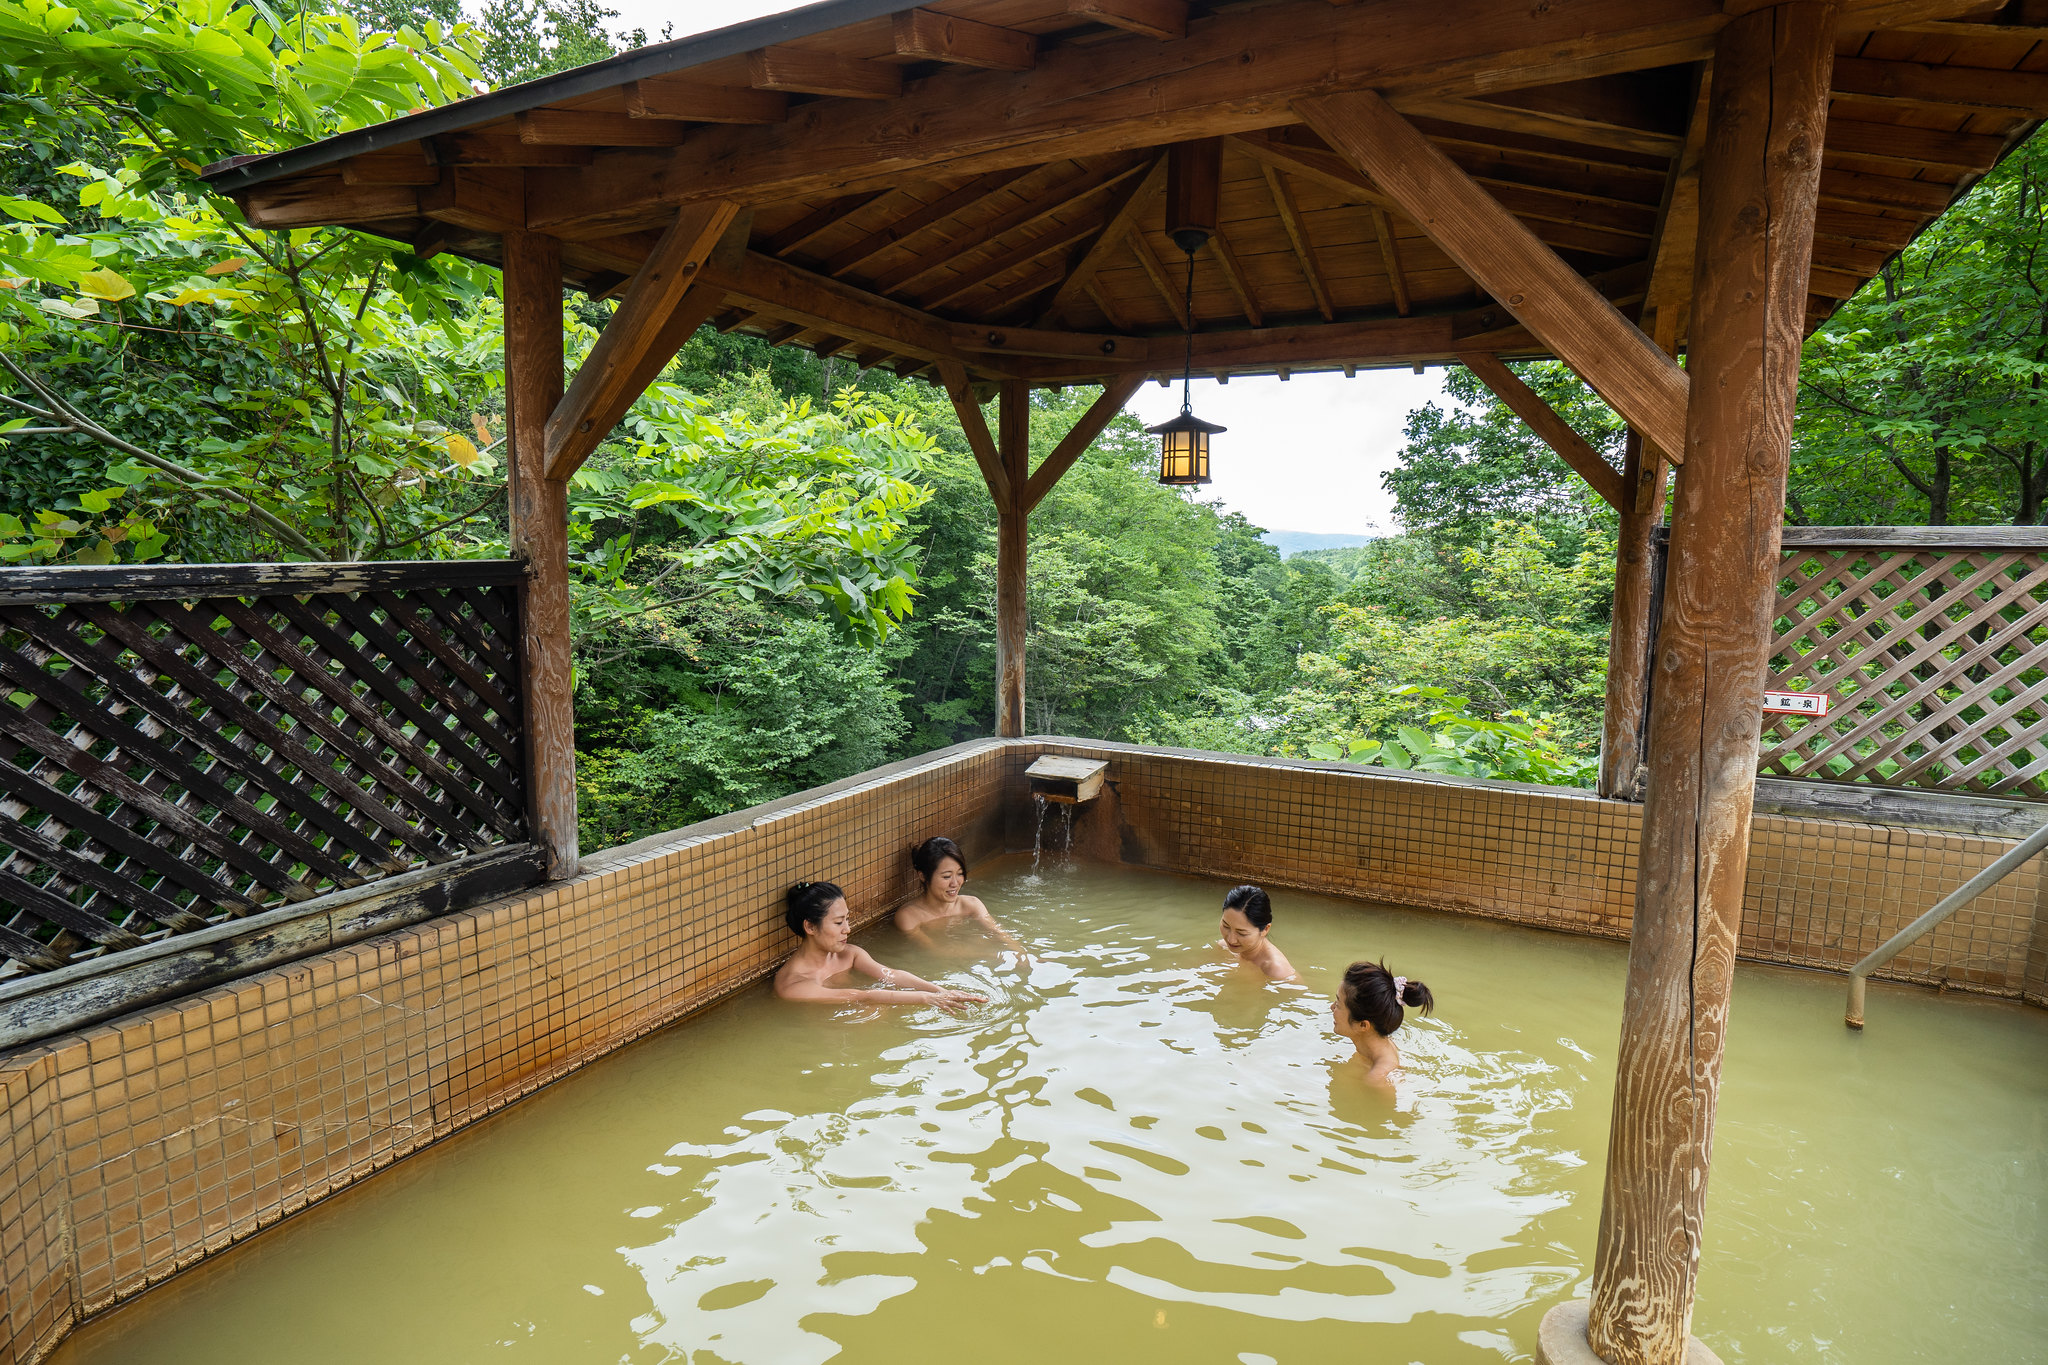 4 women bathing in an outdoor onsen in Summer at the Grand Hotel in Niseko, Japan.